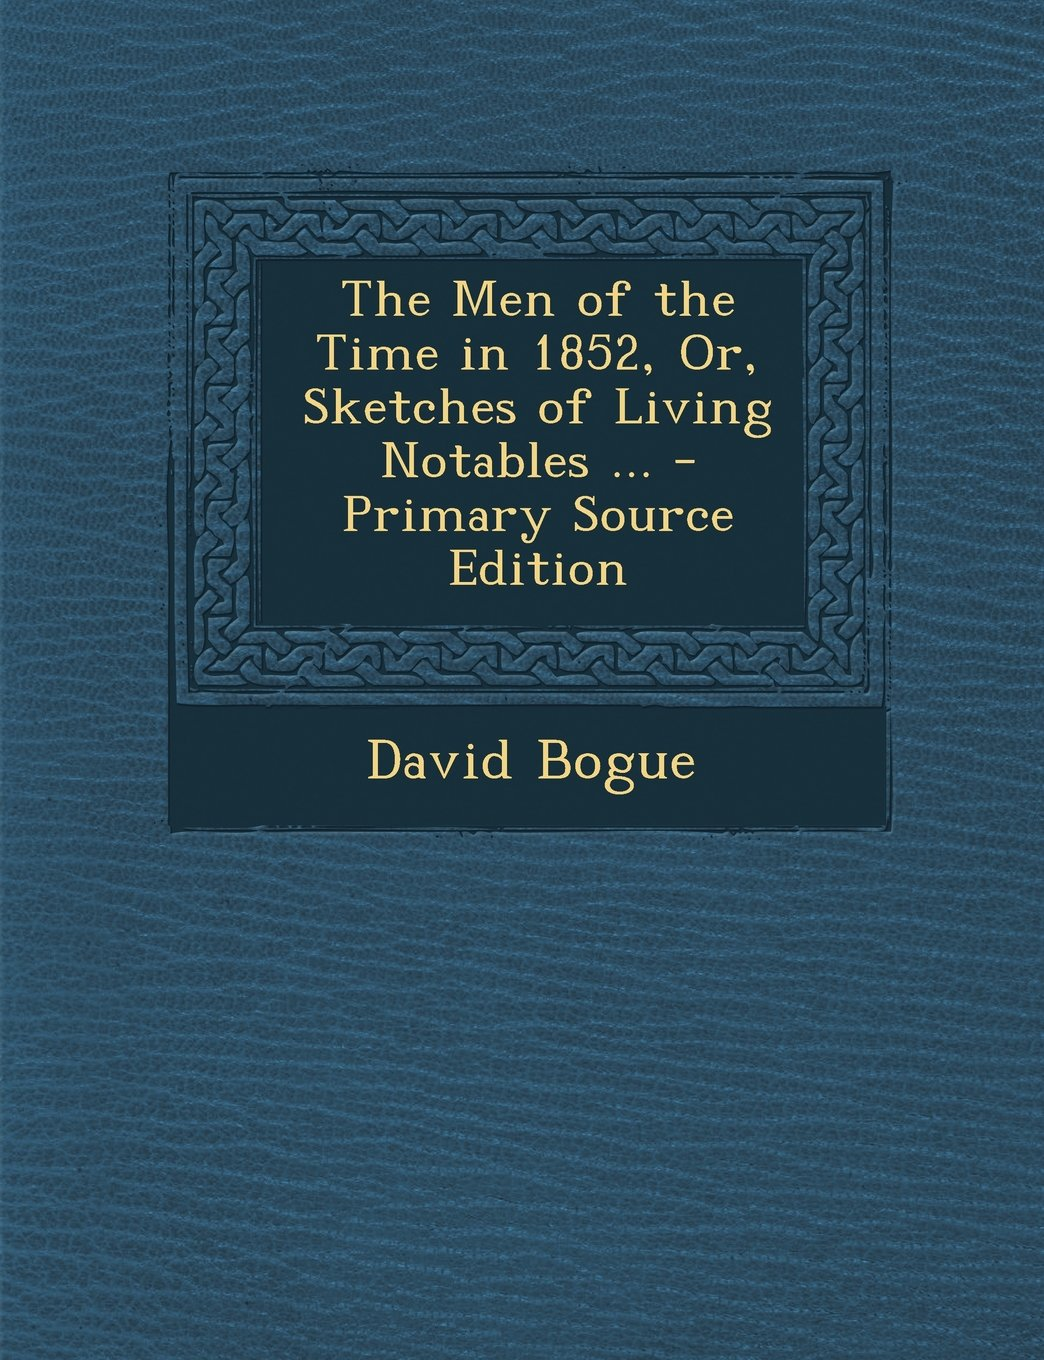 Download The Men of the Time in 1852, Or, Sketches of Living Notables ... - Primary Source Edition PDF